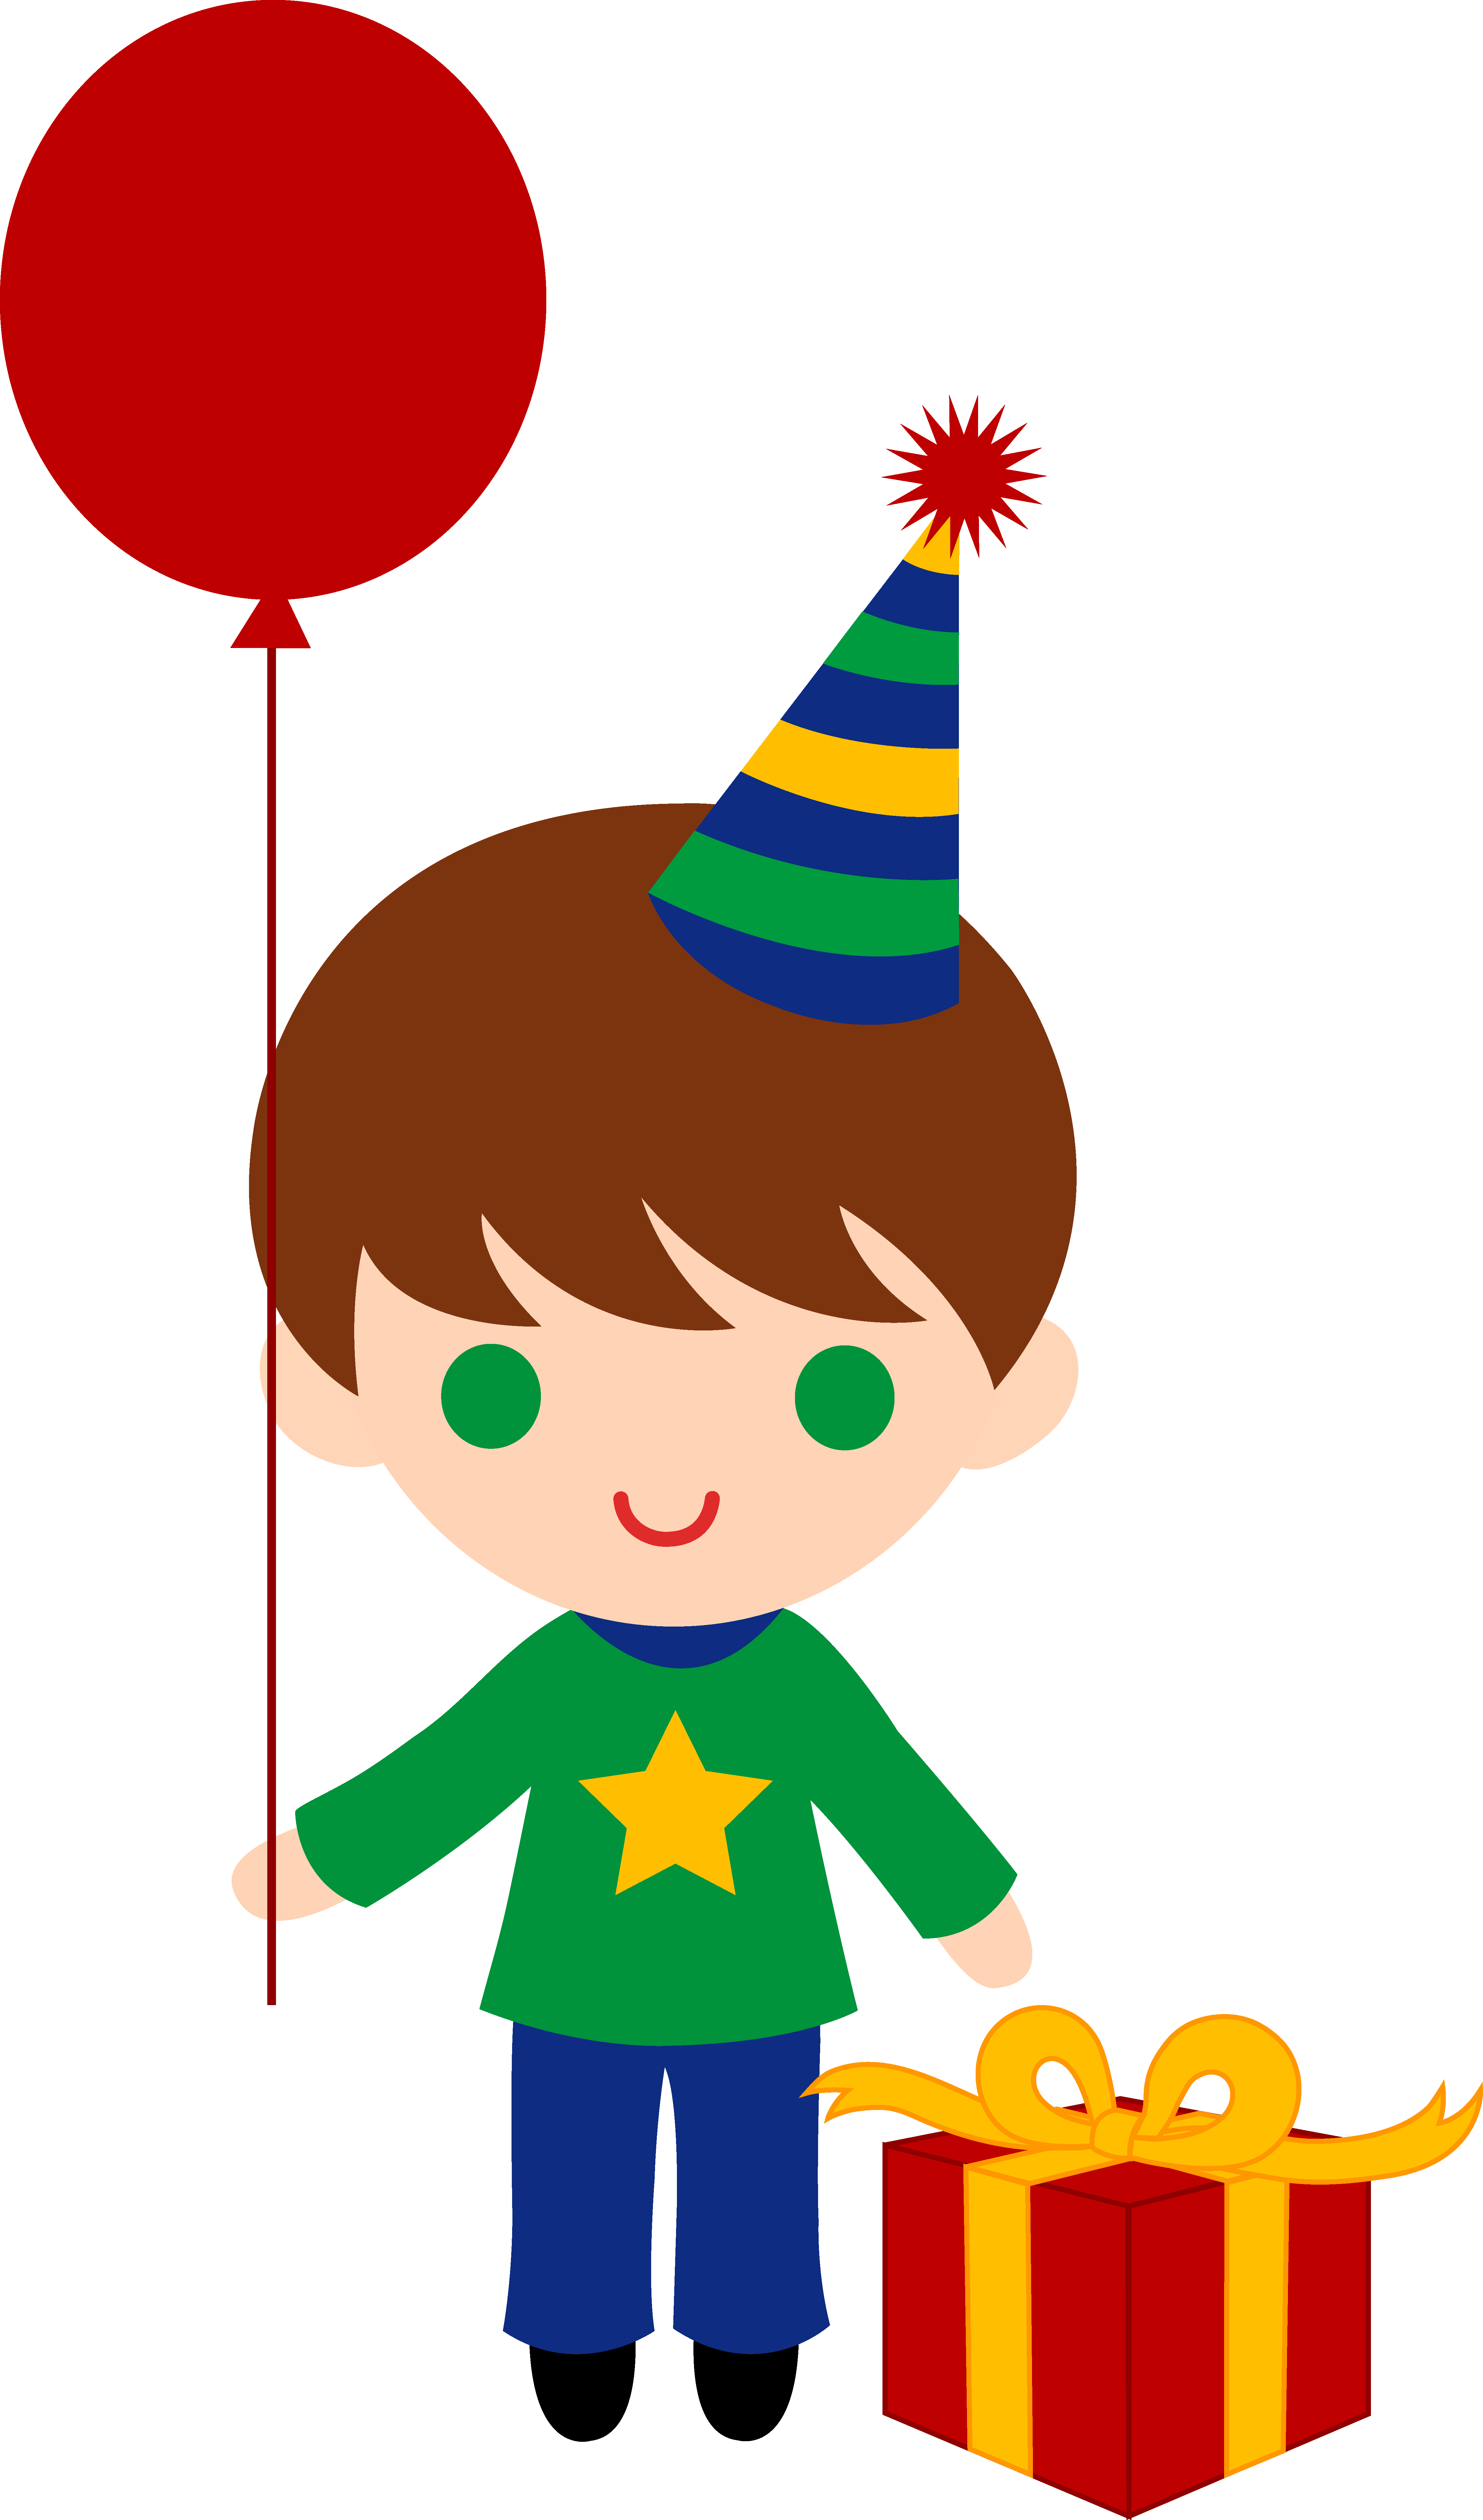 Happy birthday clipart panda. Kawaii boy png template svg black and white library